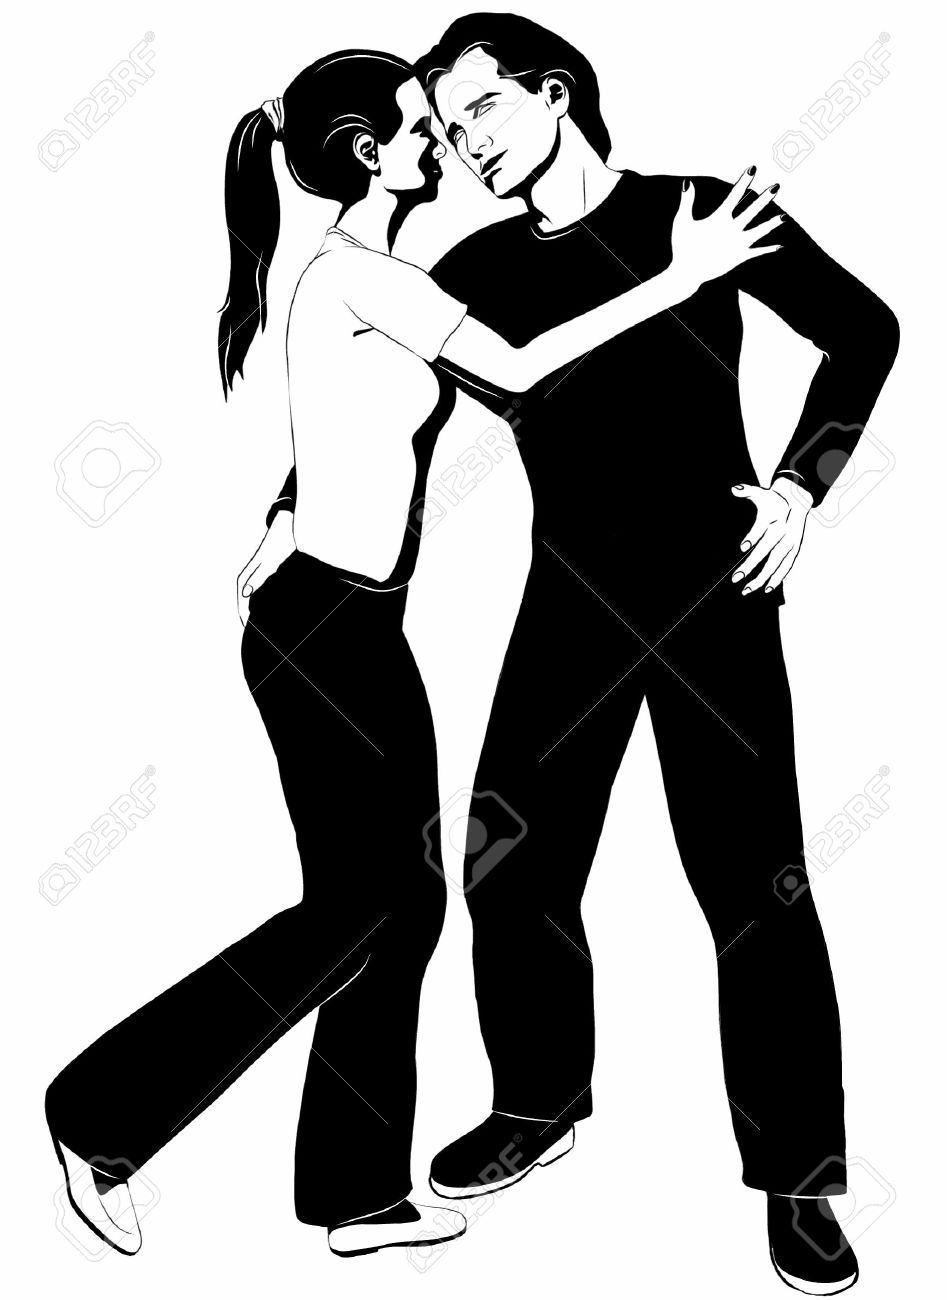 Black and white clipart drawing of a romantic couple in love